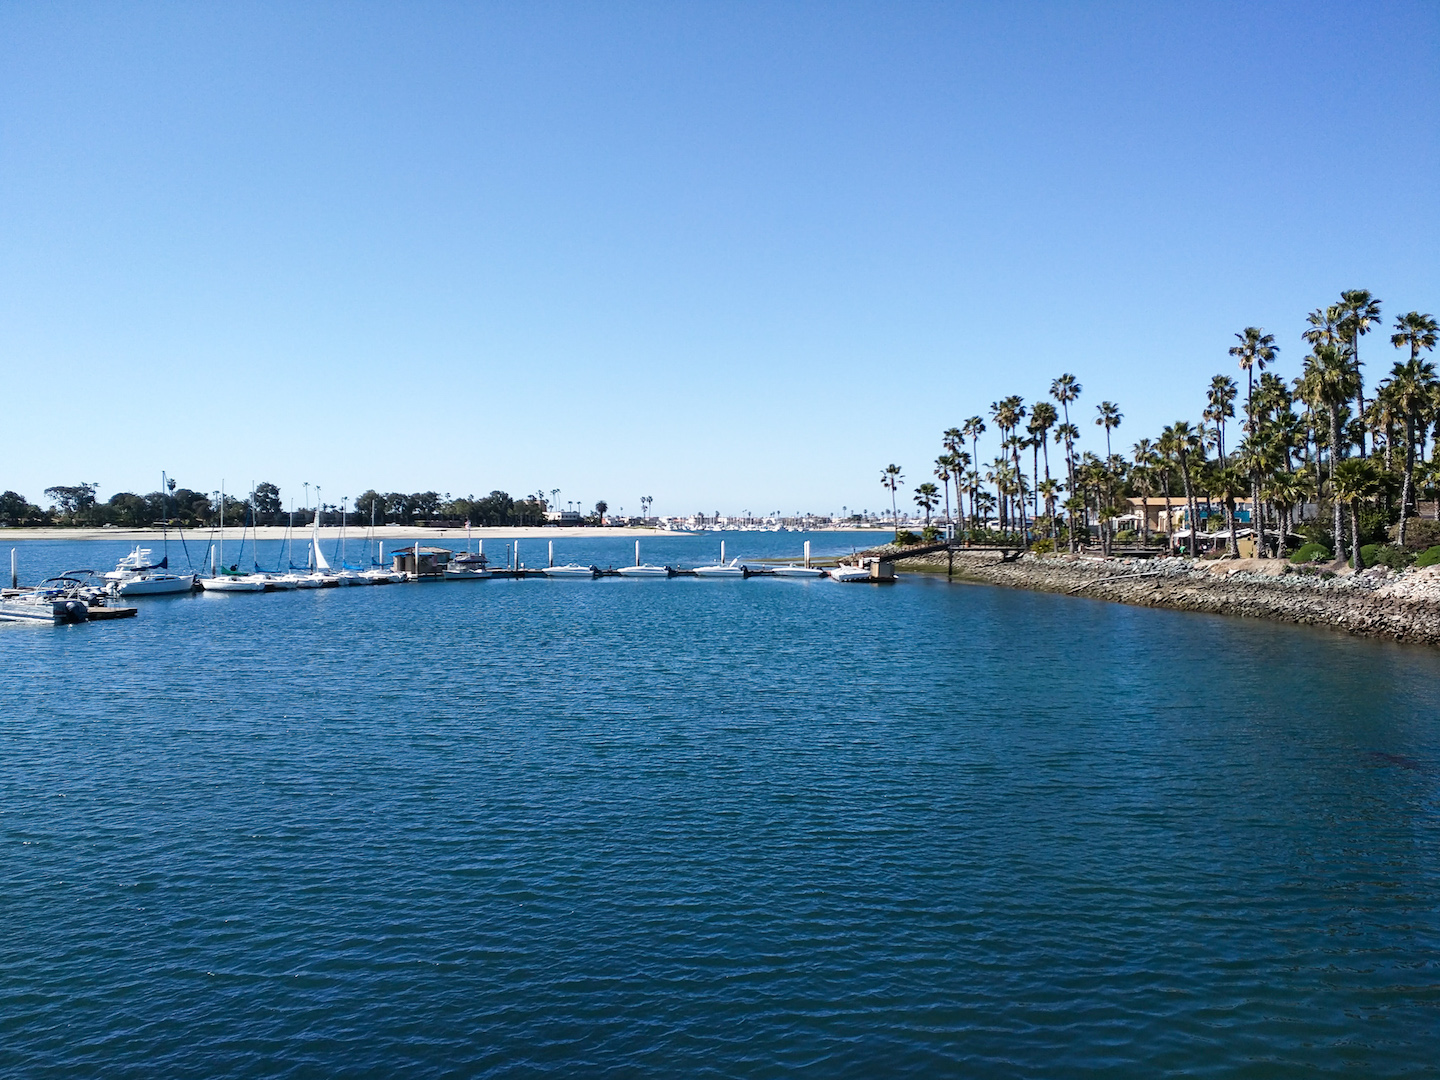 How to Spend a Long Weekend in San Diego - KCTRVLR